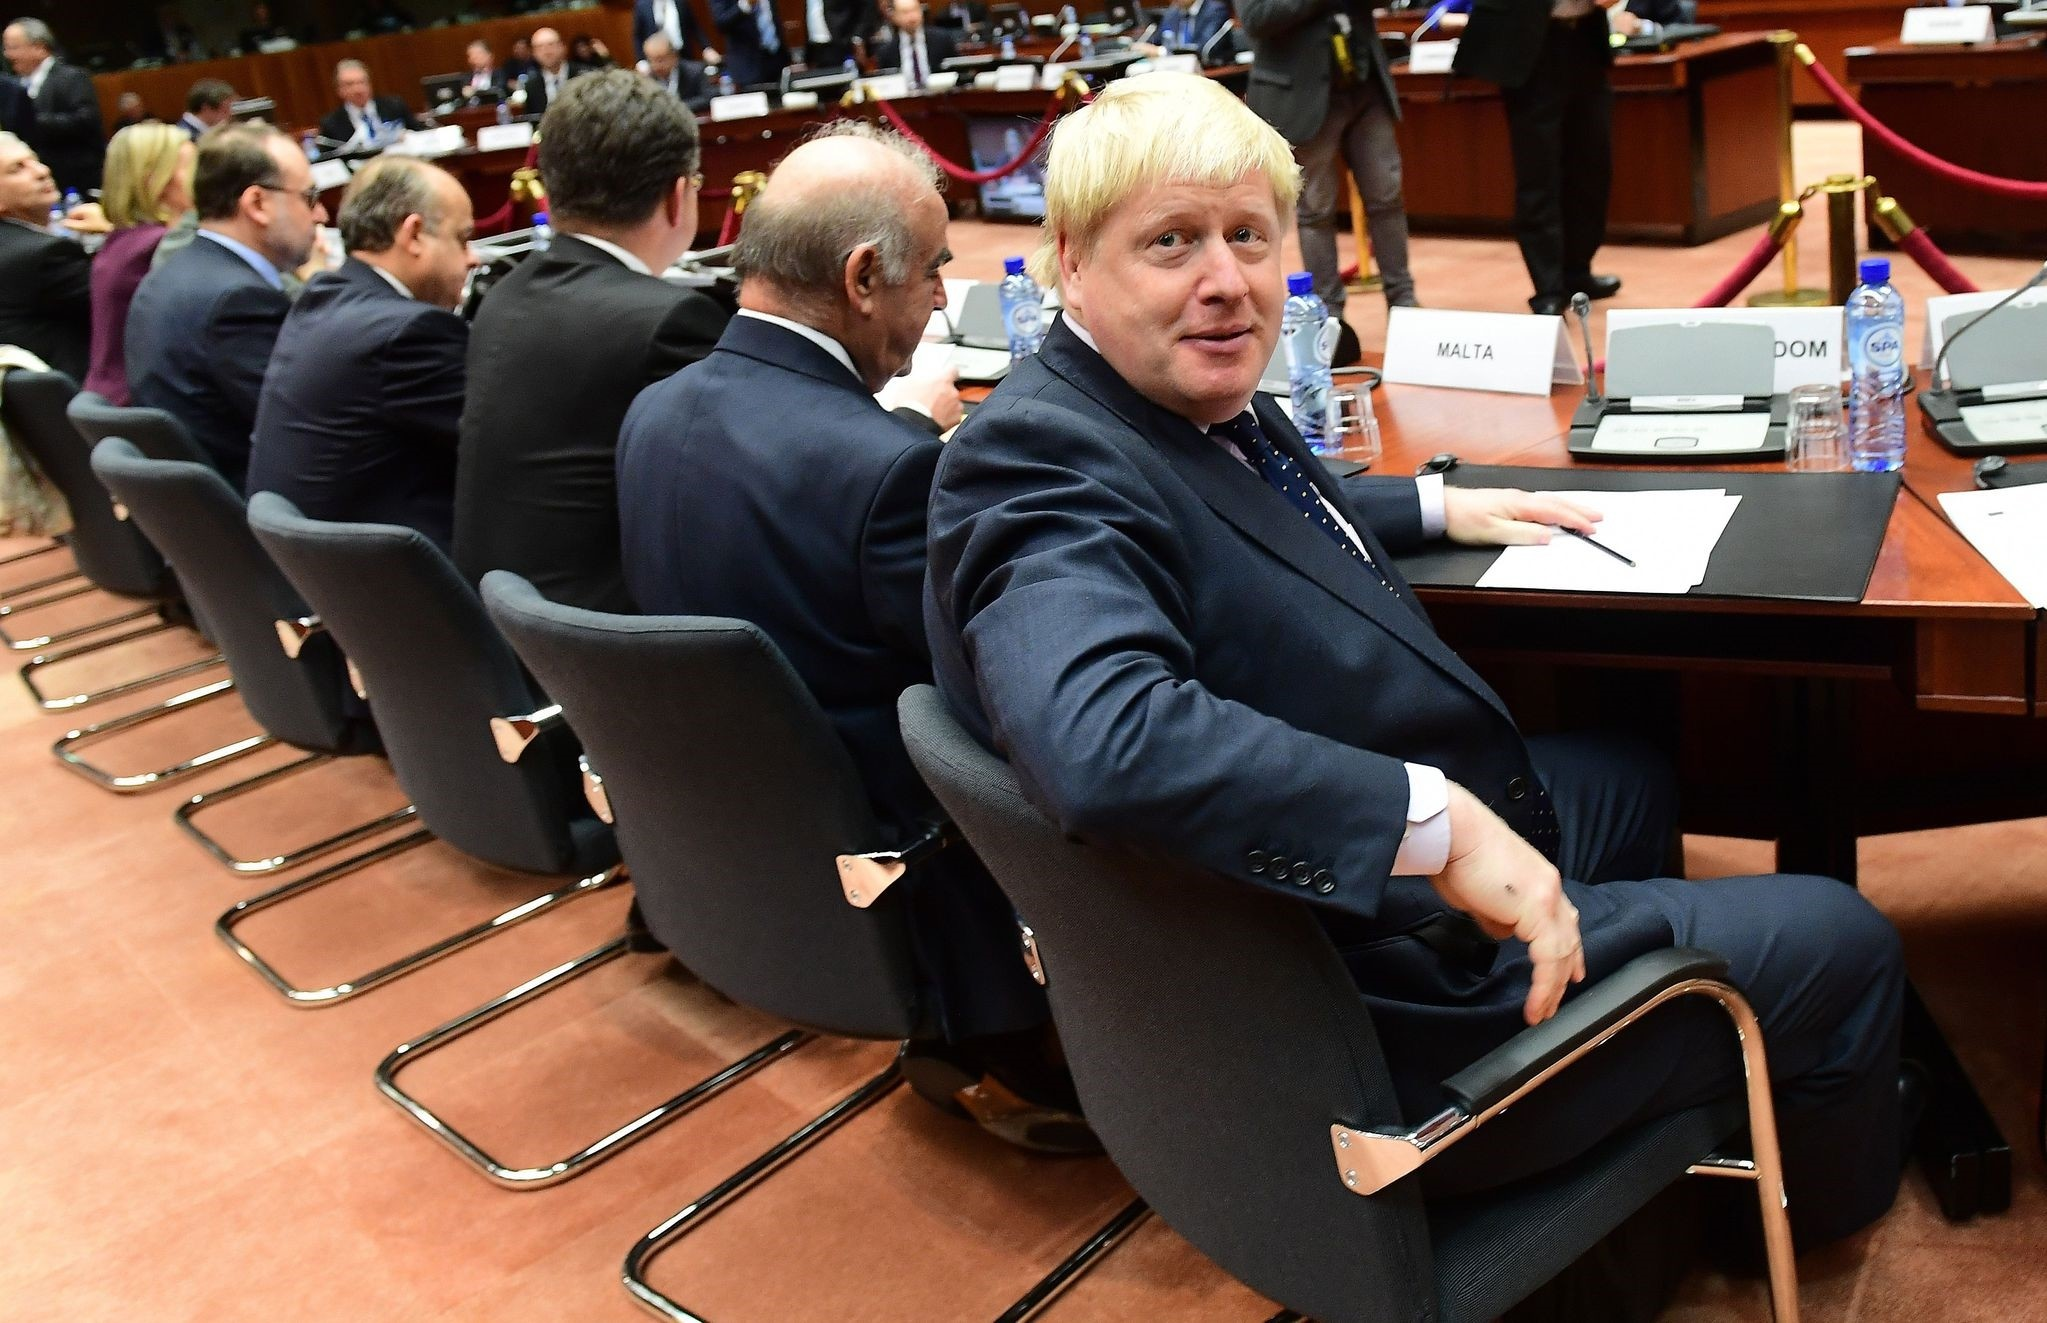 British Foreign Secretary Boris Johnson attends an EU foreign affairs council at the European Council, in Brussels on November 14, 2016. (AFP PHOTO)